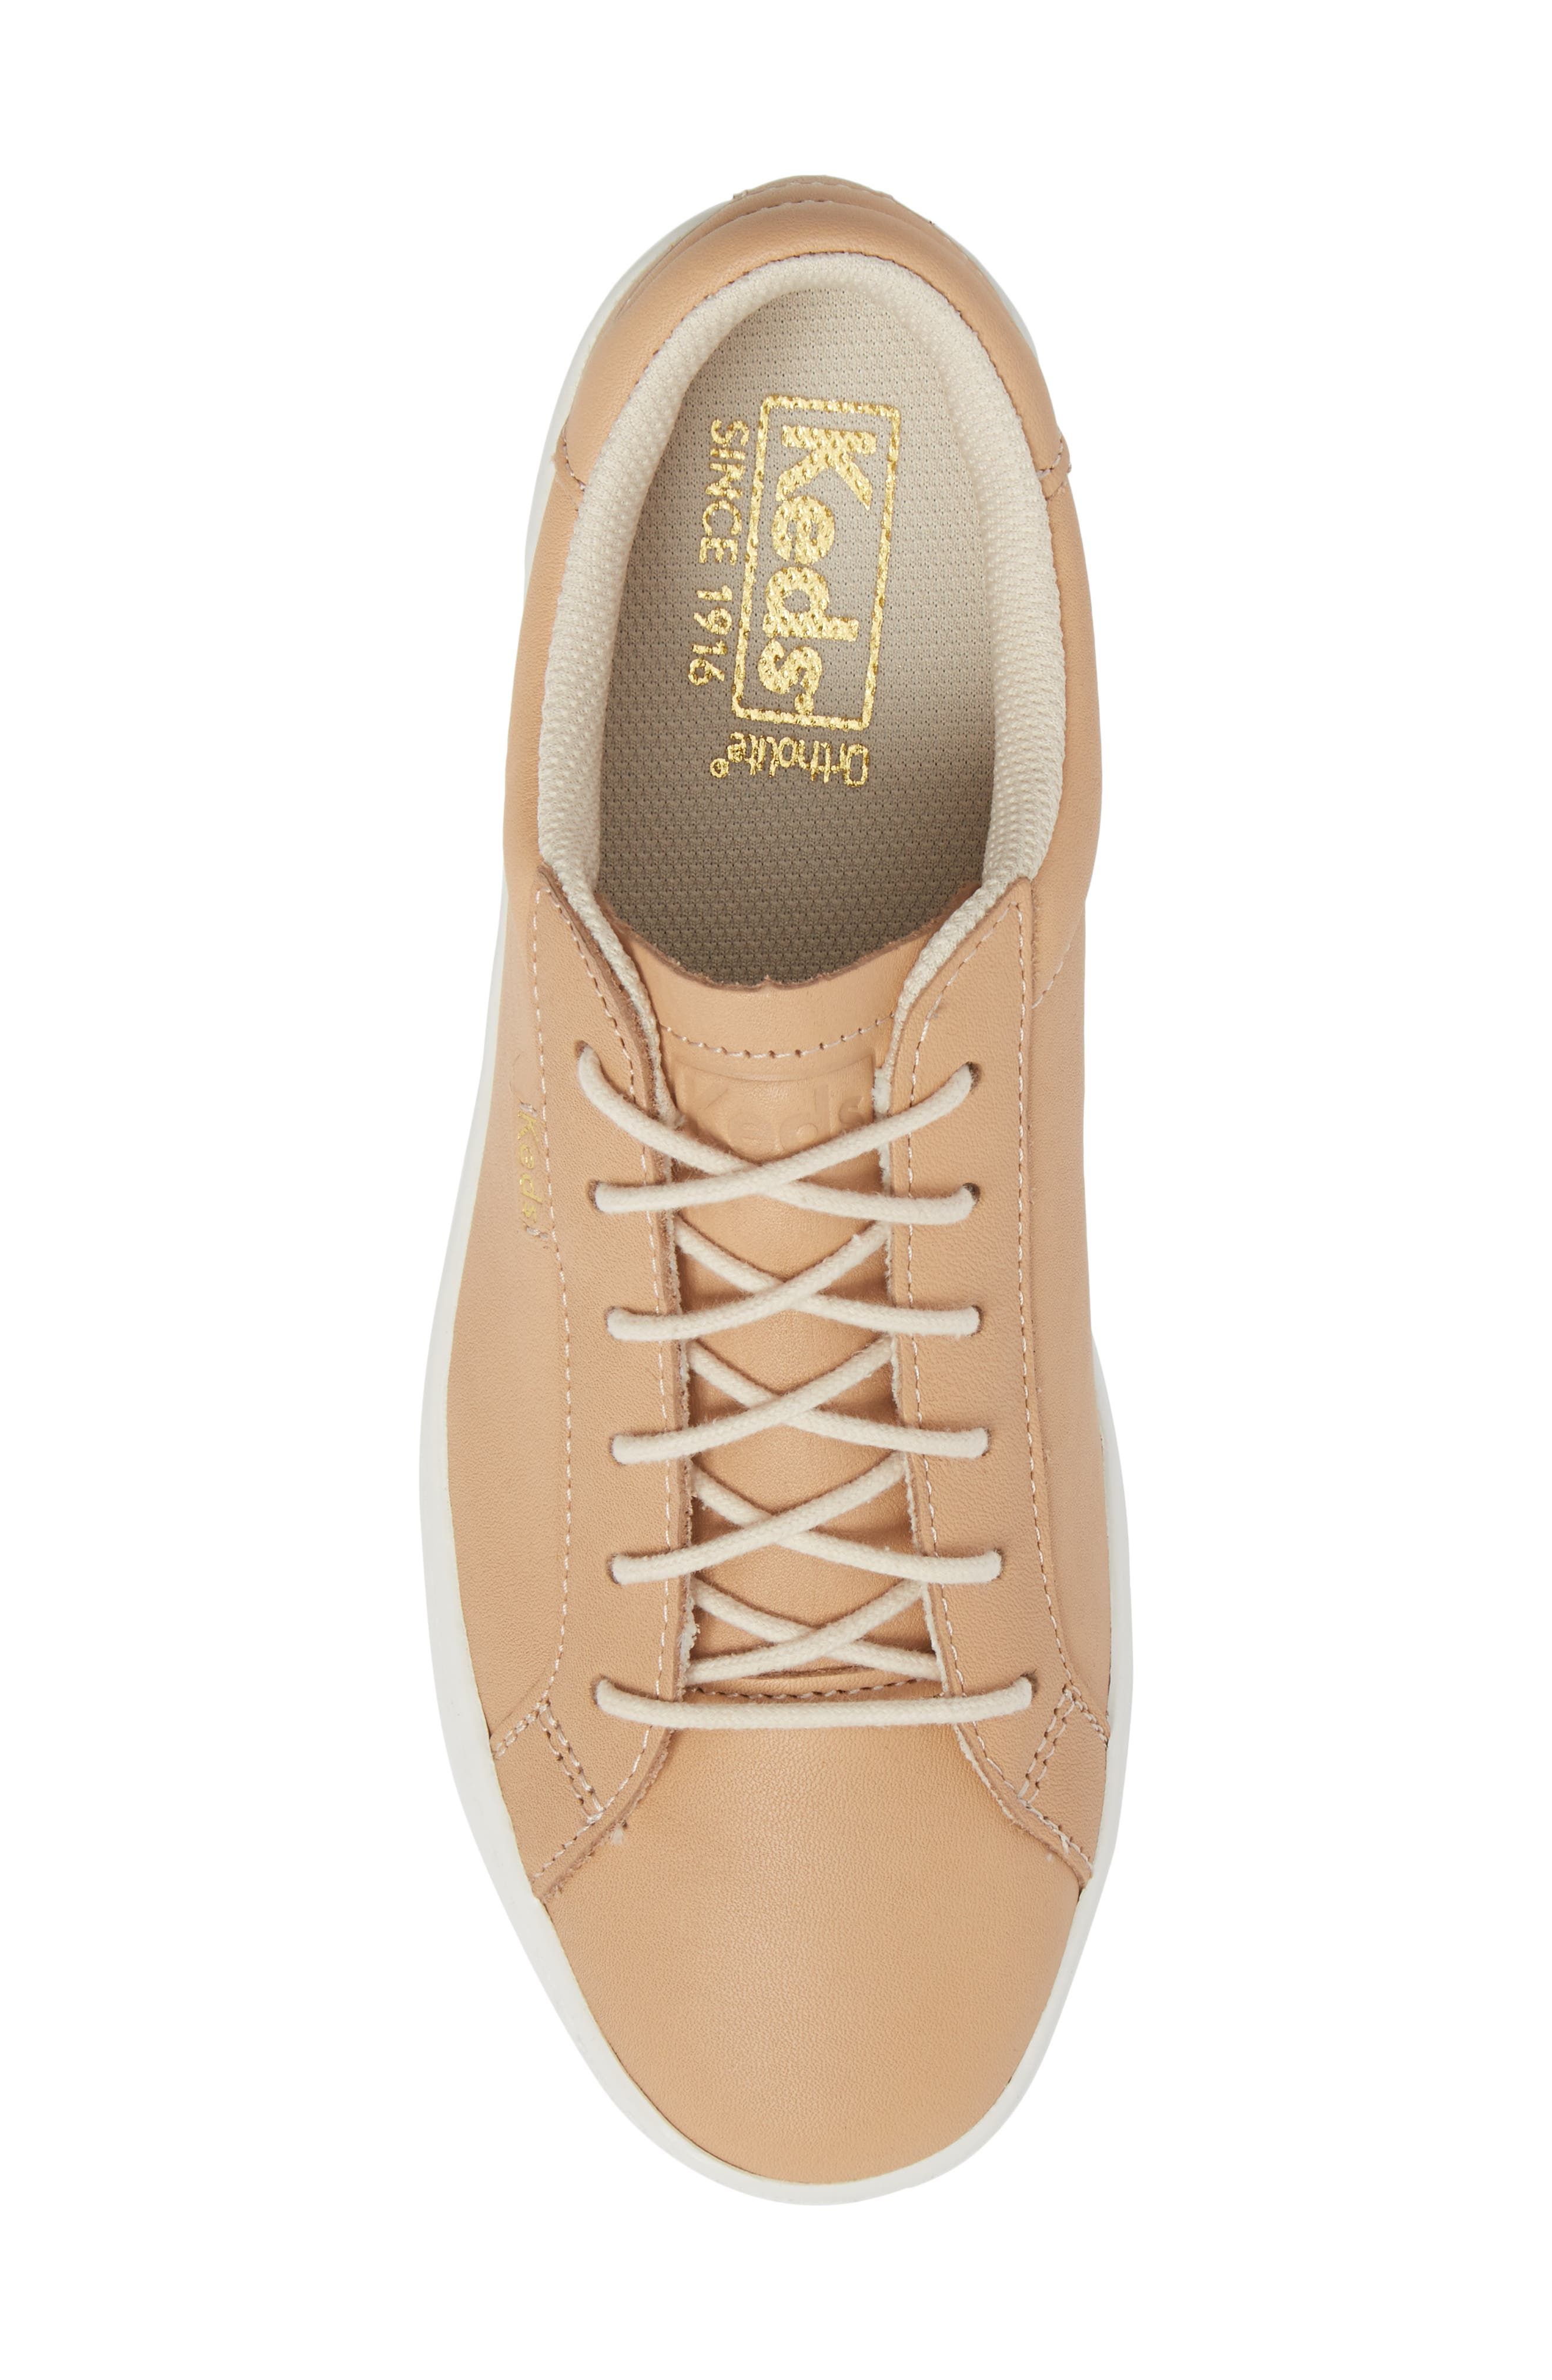 Ace Leather Sneaker,                             Alternate thumbnail 5, color,                             Natural